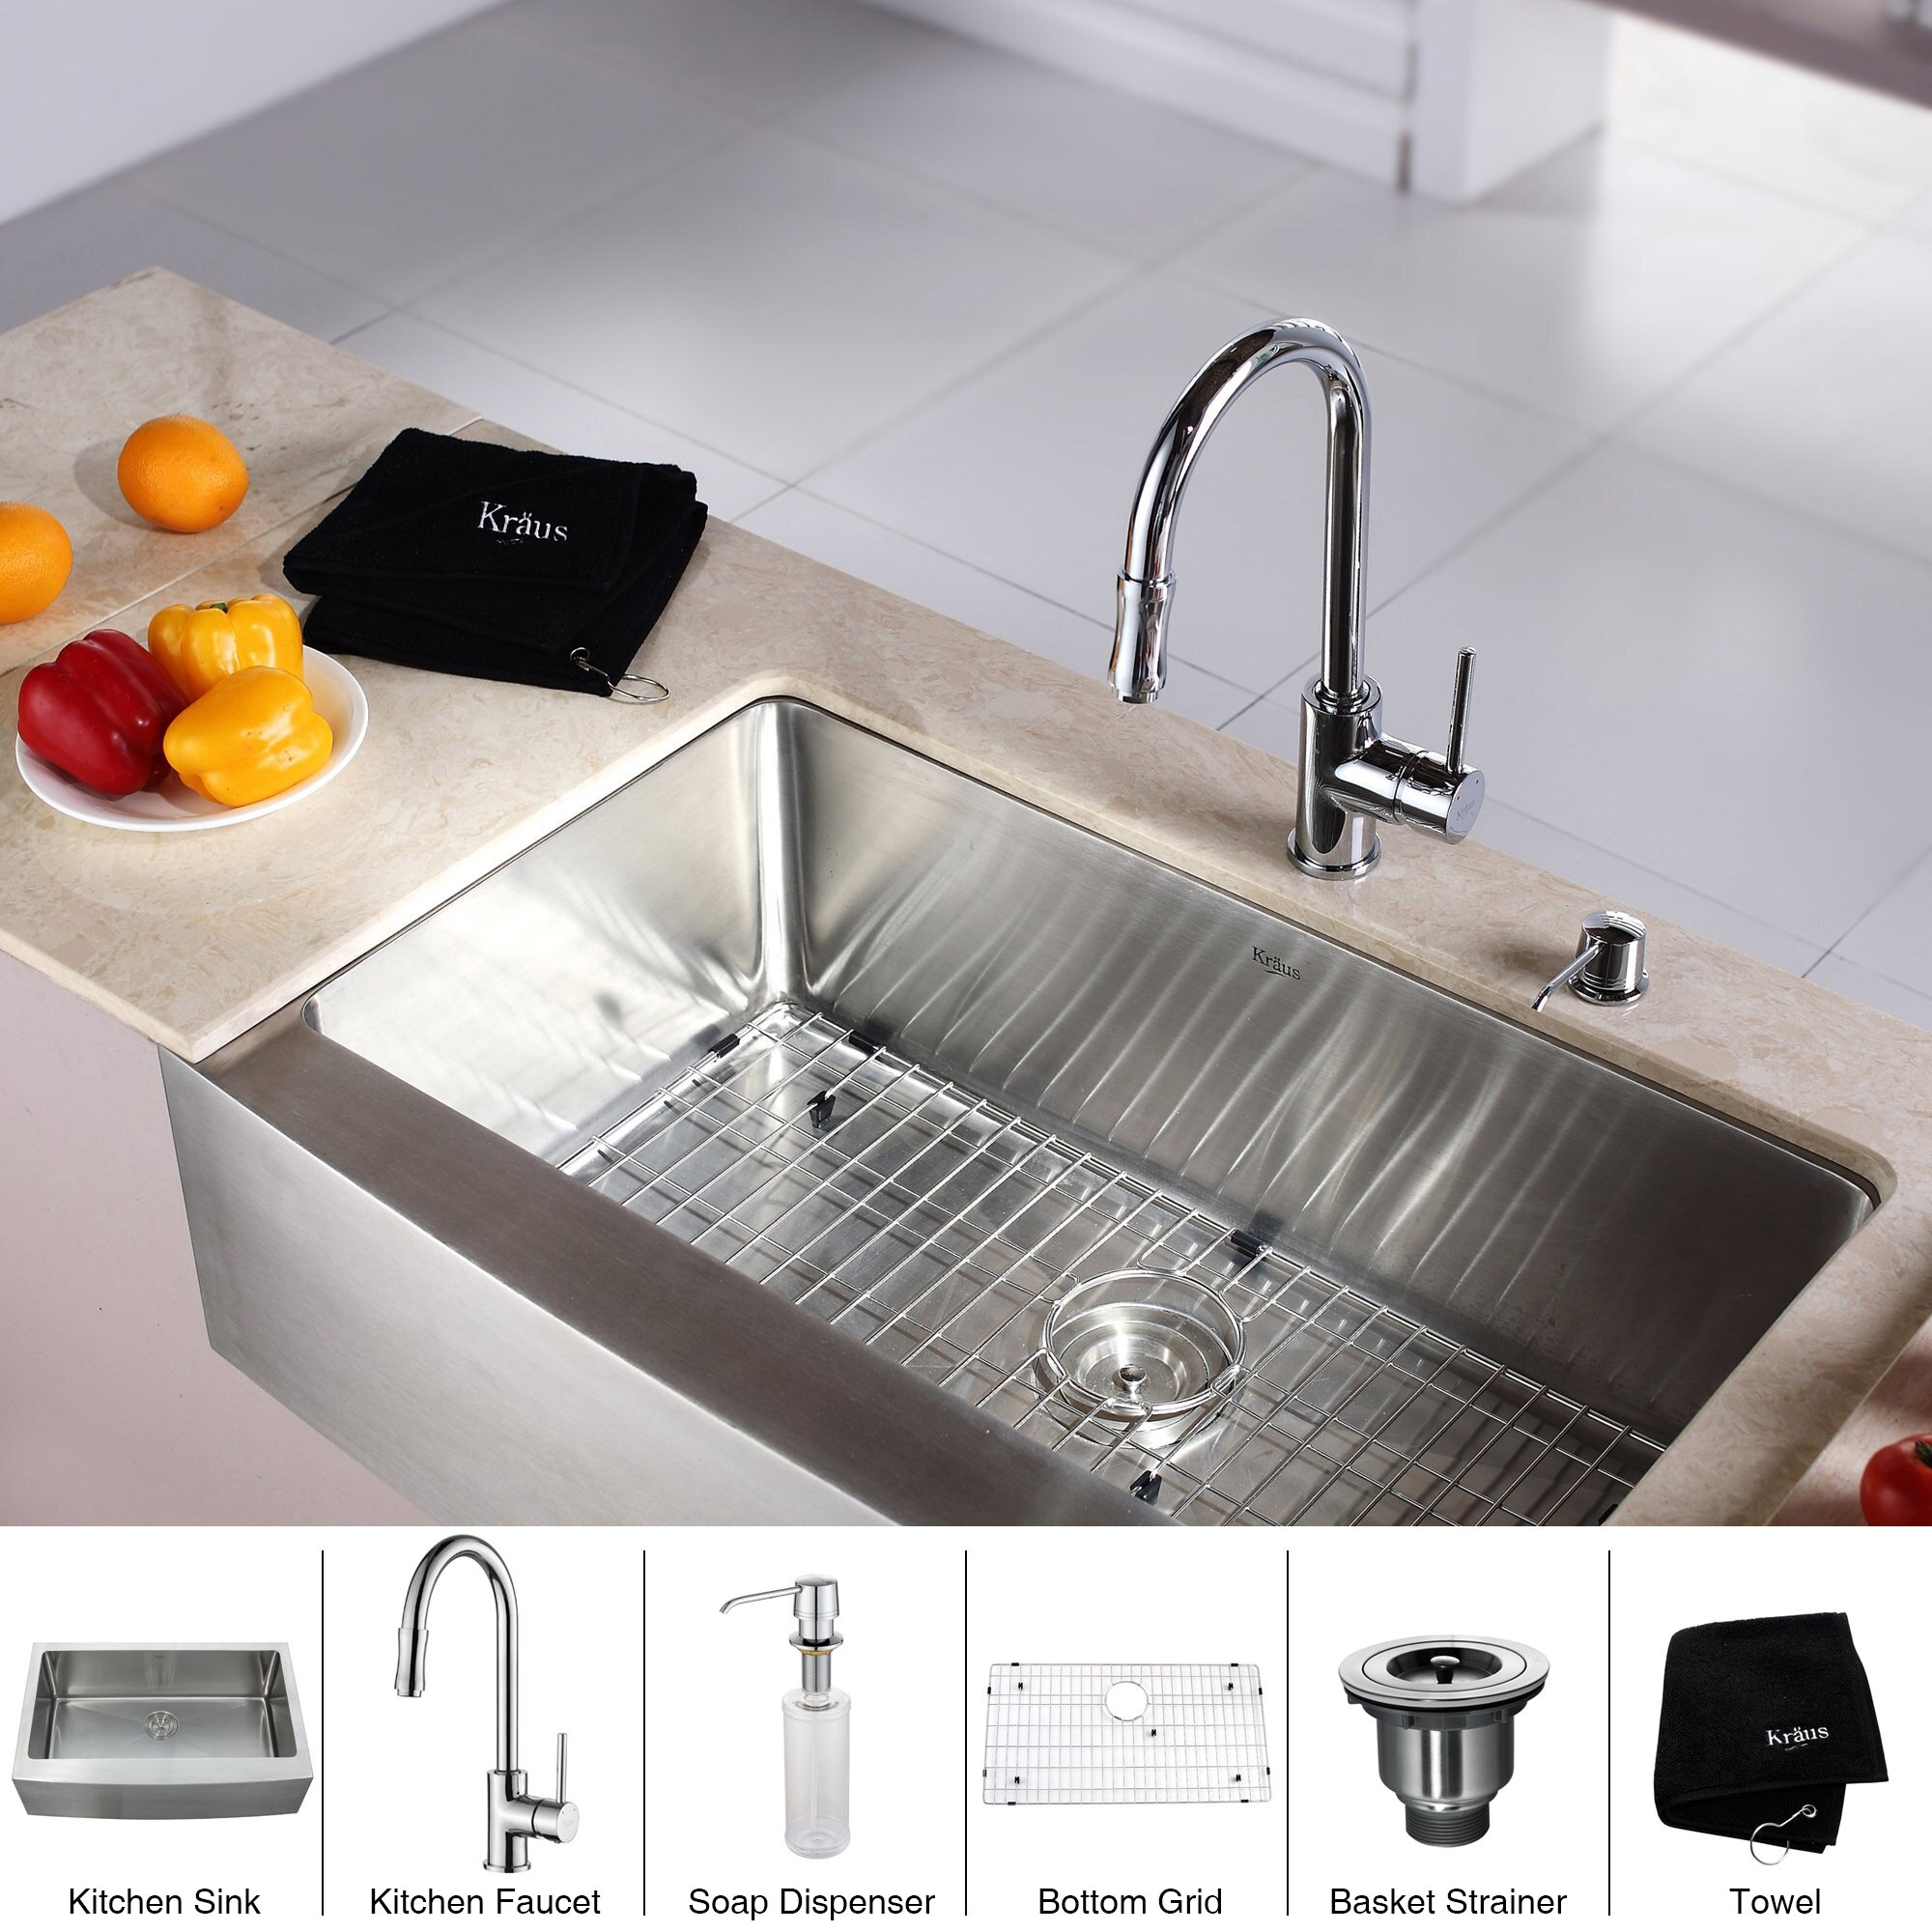 Kraus Farmhouse Kitchen Sink With Faucet And Soap Dispenser Reviews Wayfair